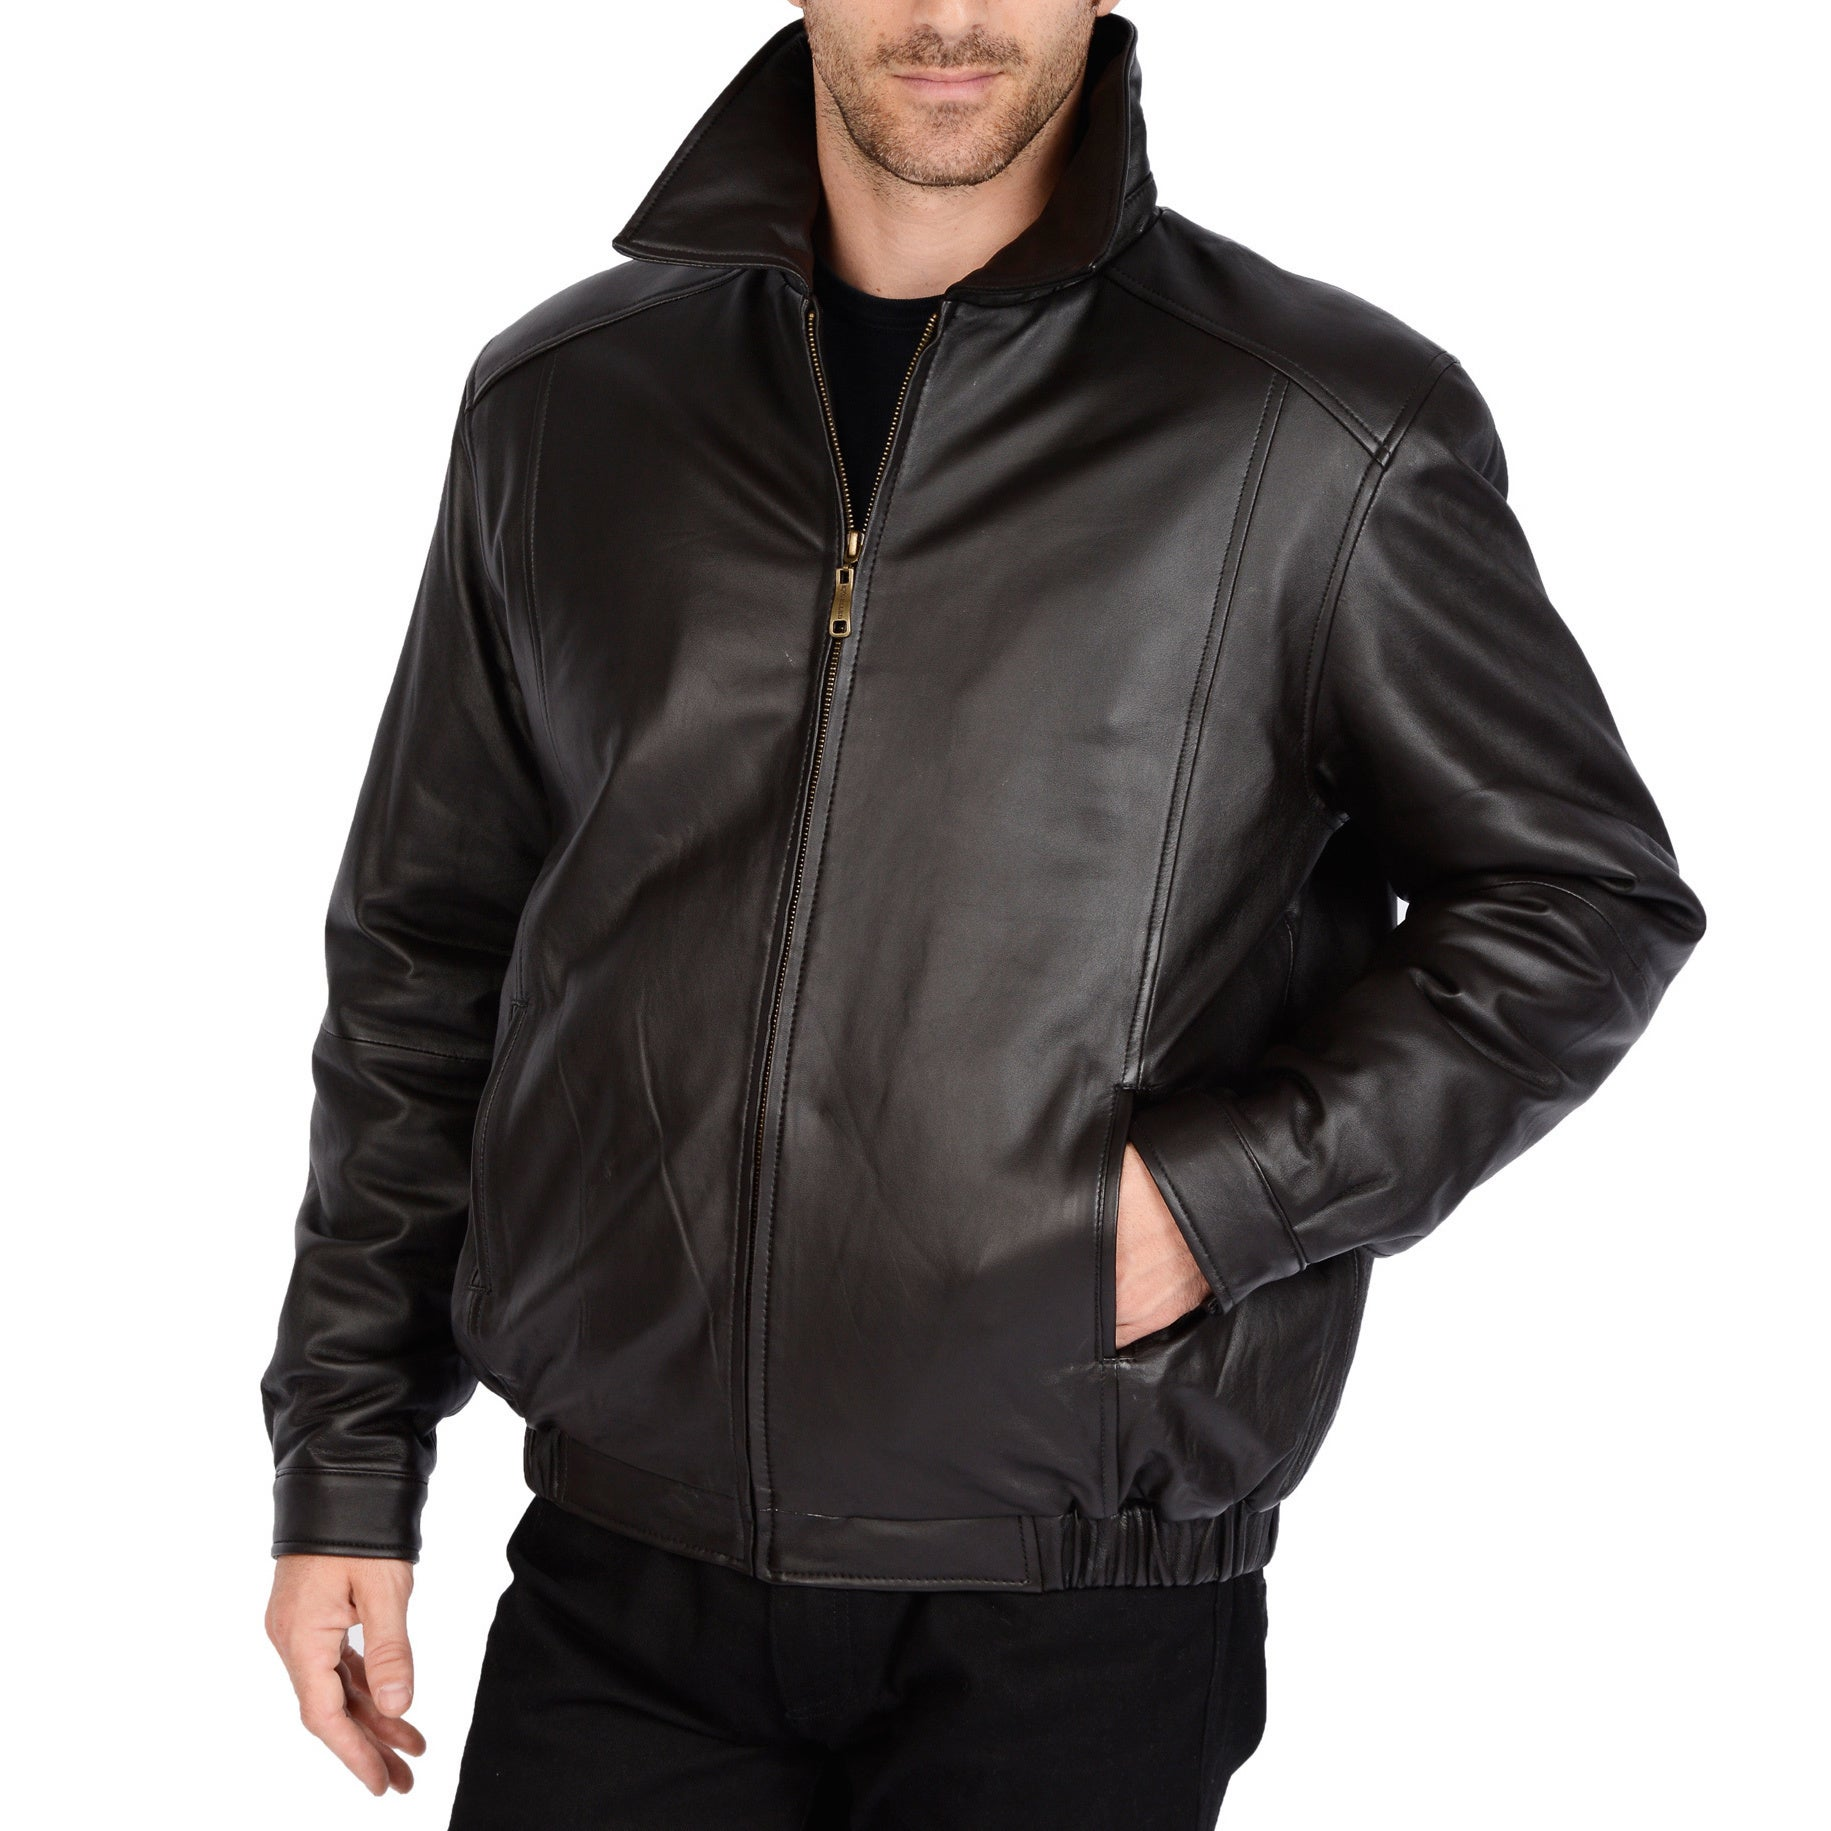 9244e8a5b65 Excelled Men s Big and Tall Lamb Leather Bomber Jacket